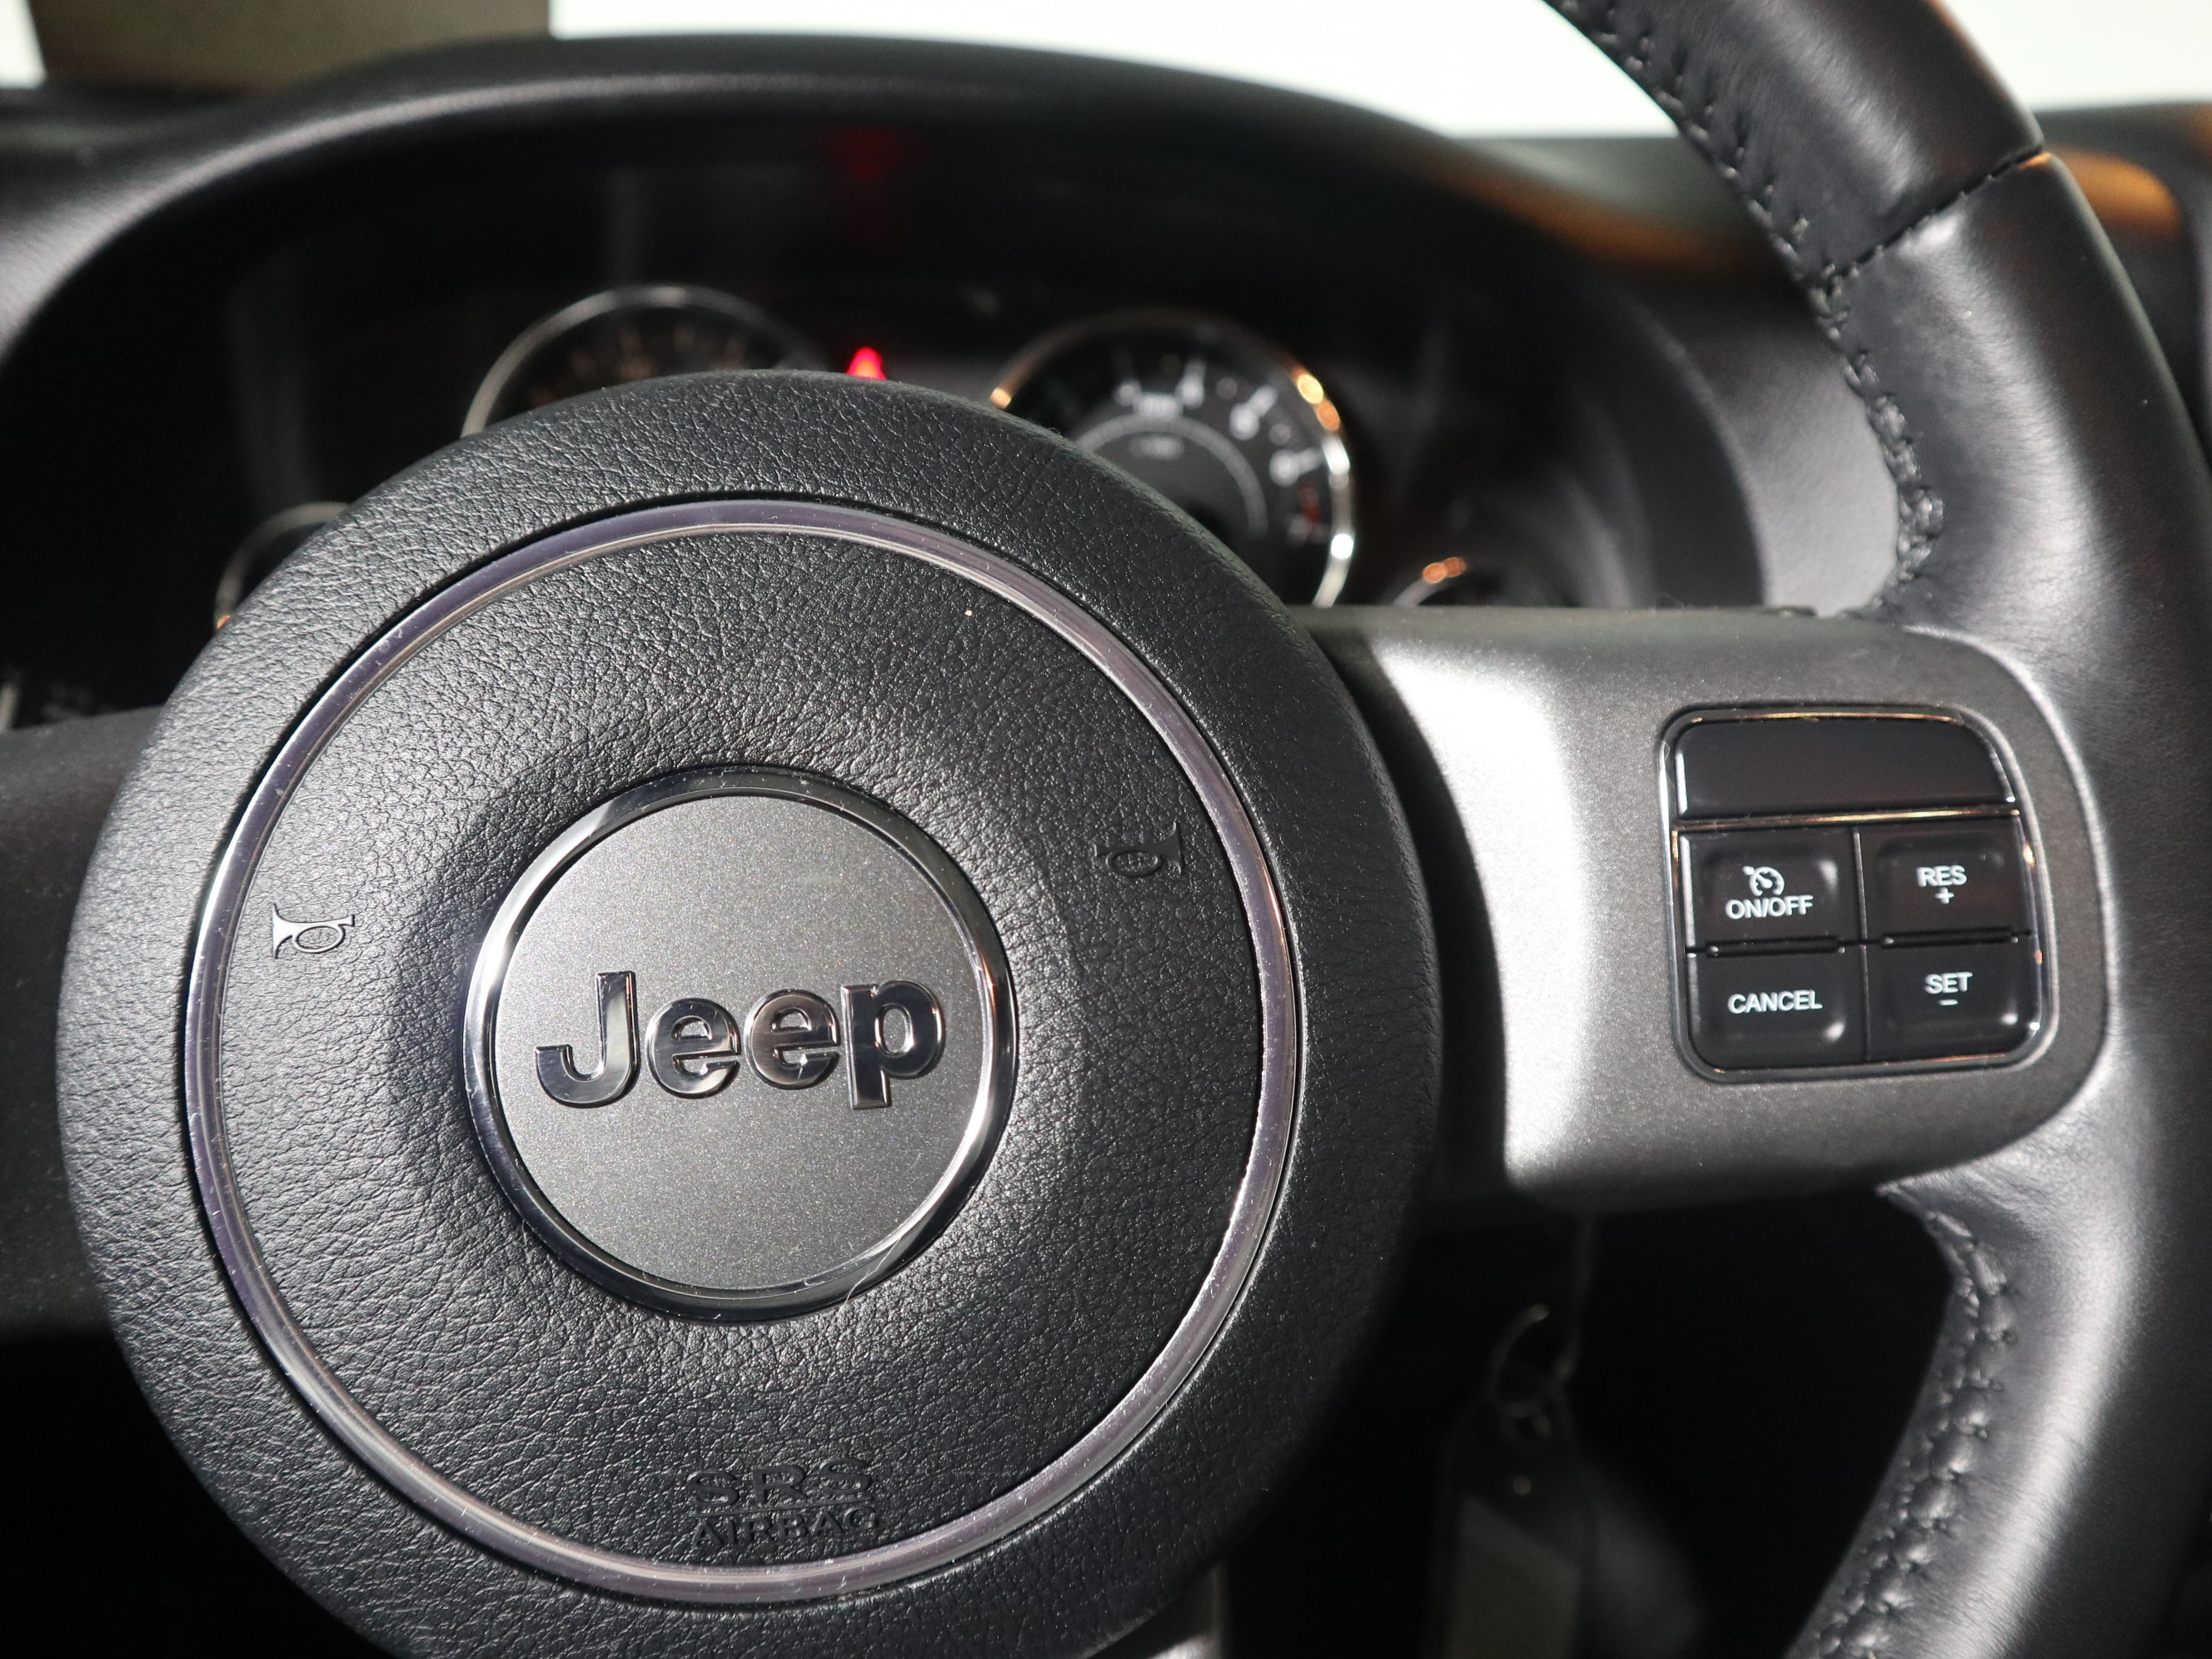 2016 Jeep Wrangler Unlimited - Fair Car Ownership